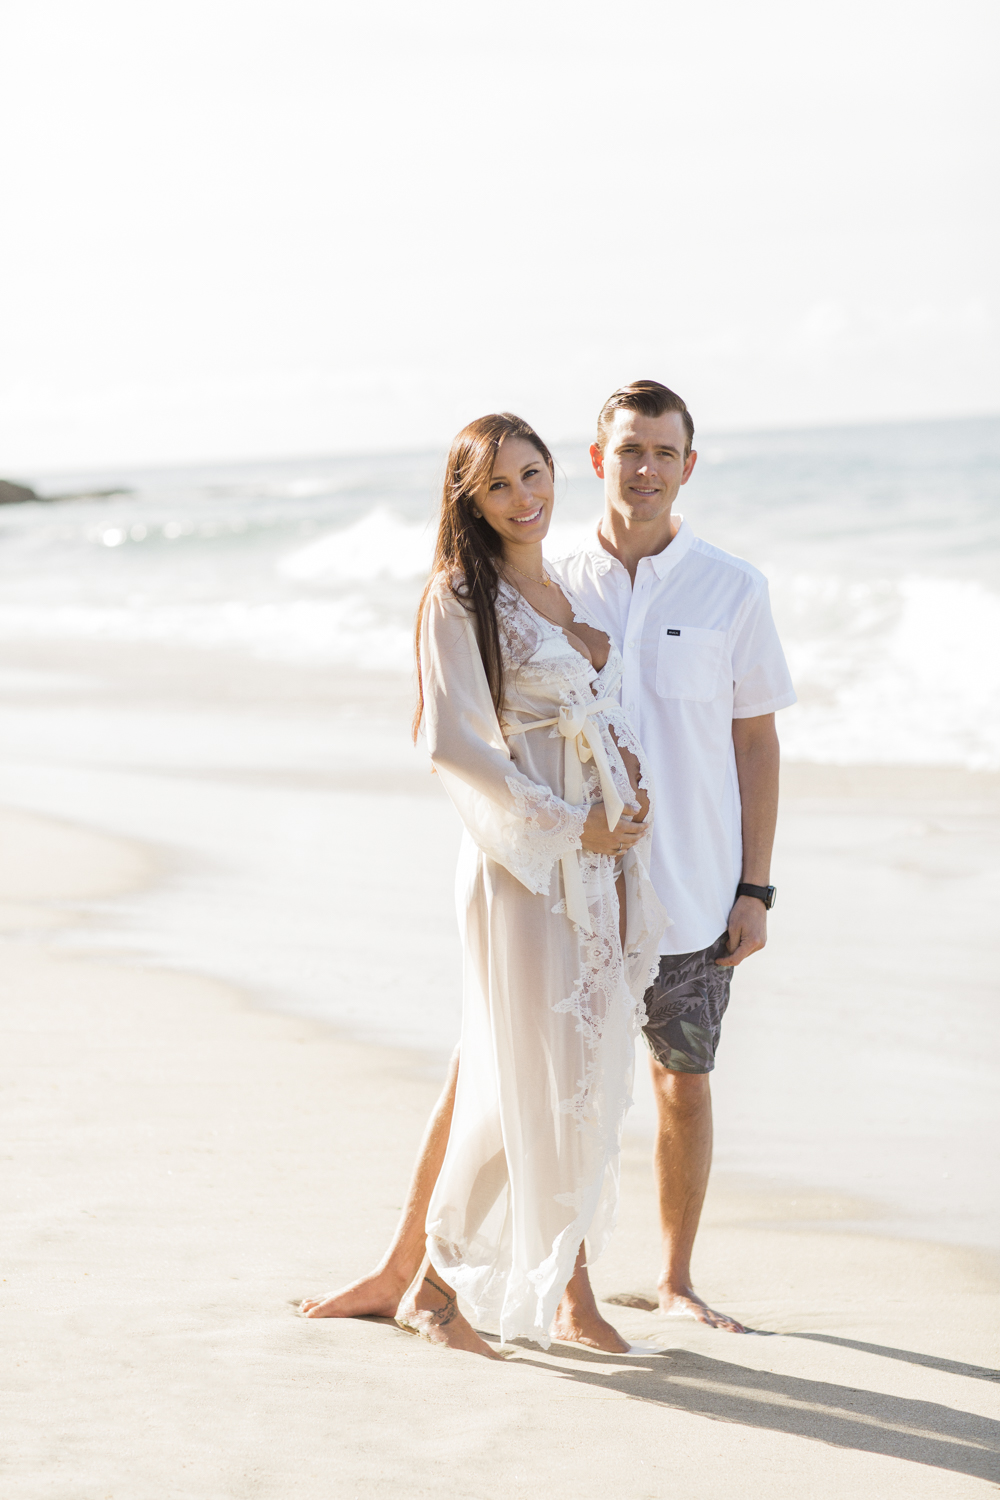 LagunaBeach_Family_MaternityShoot_SidneyKraemer_Low-30.jpg